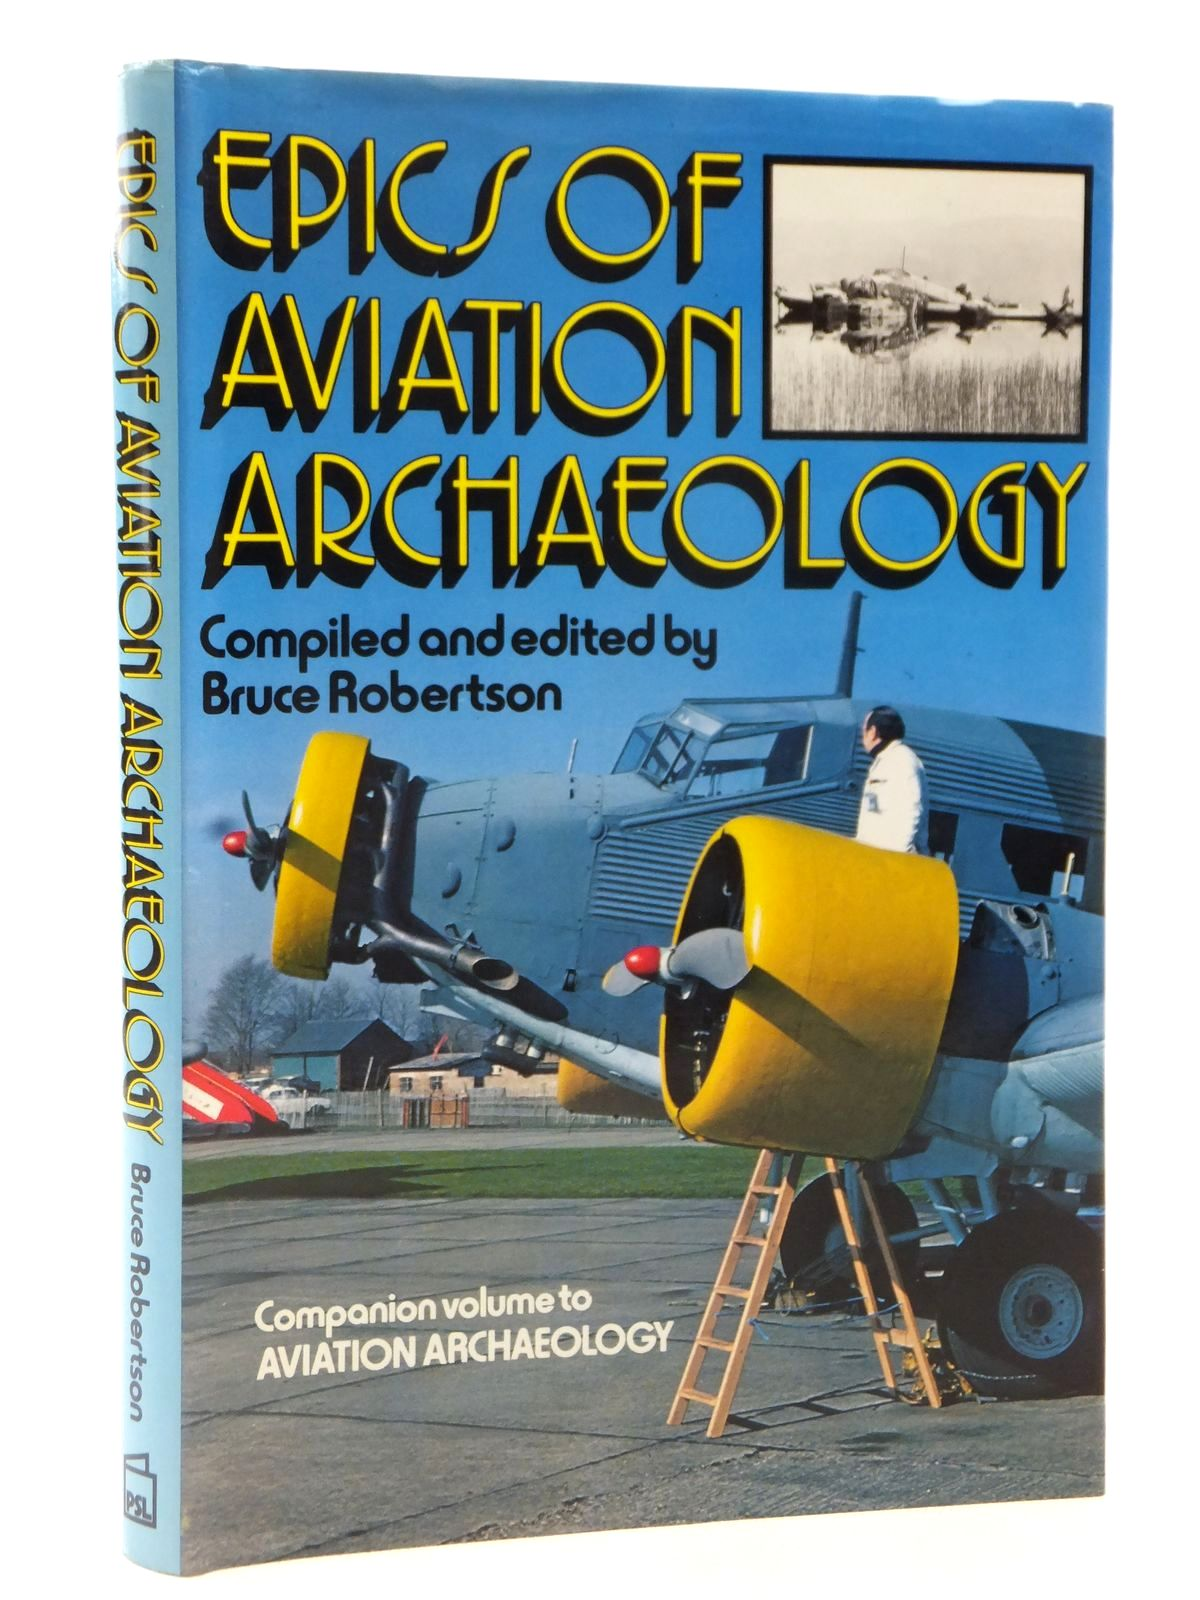 Photo of EPICS OF AVIATION ARCHAEOLOGY written by Robertson, Bruce published by Patrick Stephens Limited (STOCK CODE: 2122598)  for sale by Stella & Rose's Books